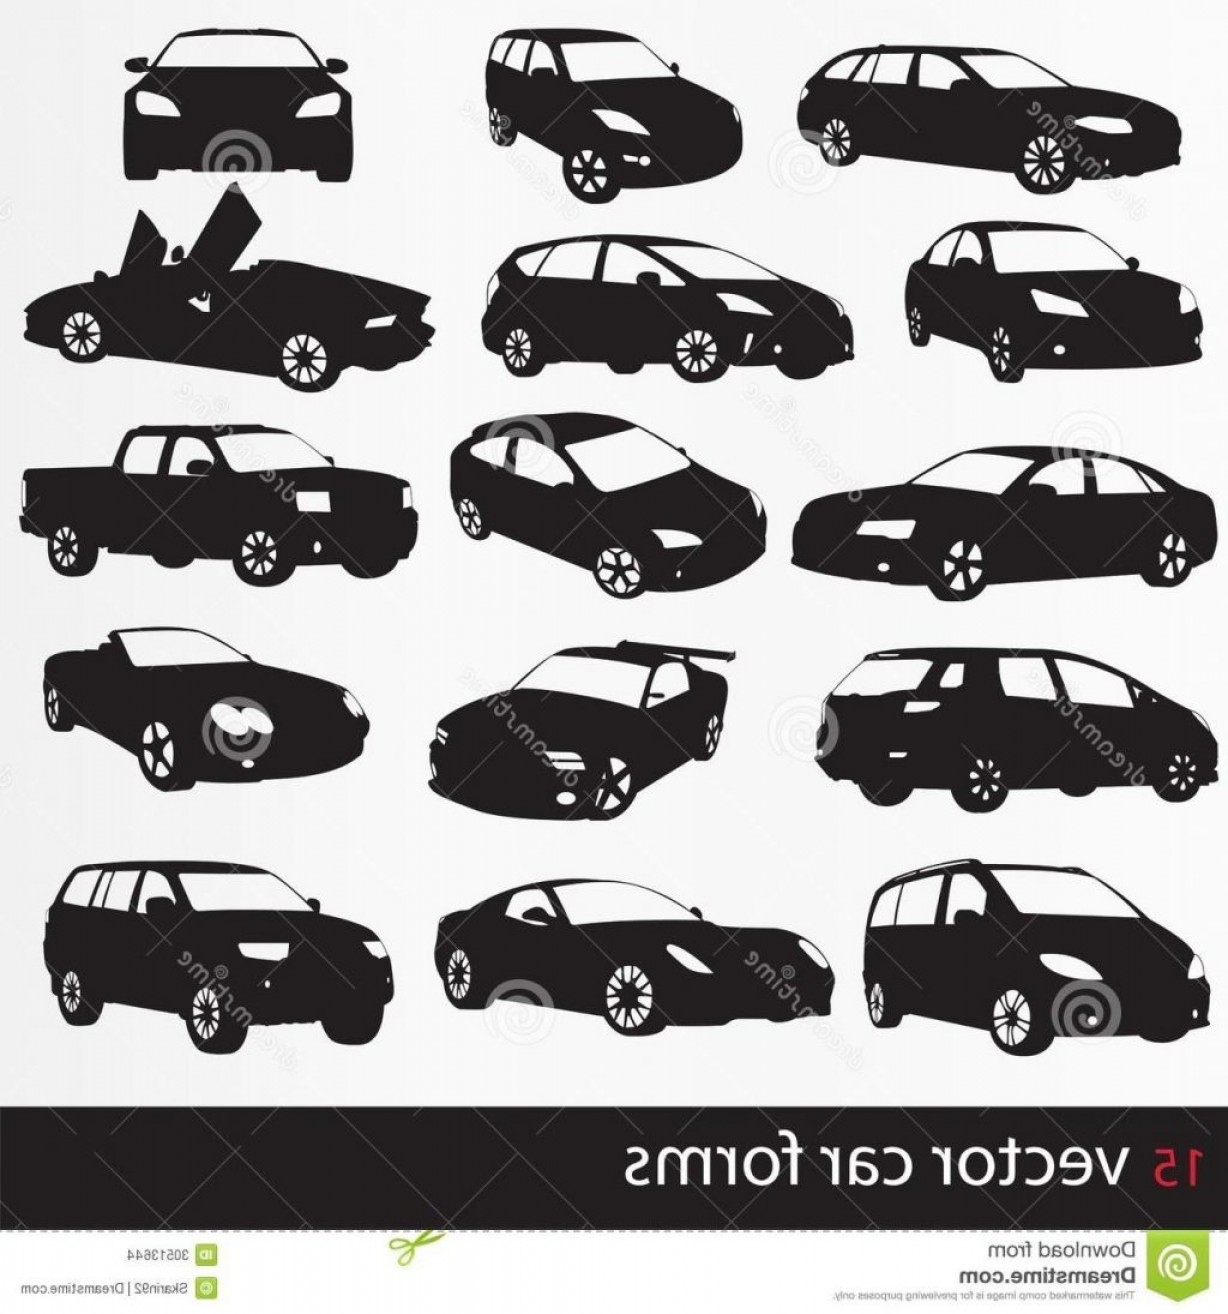 Car Silhouette Vector Free: Top Cars Silhouette Vector Illustration Black Images Drawing